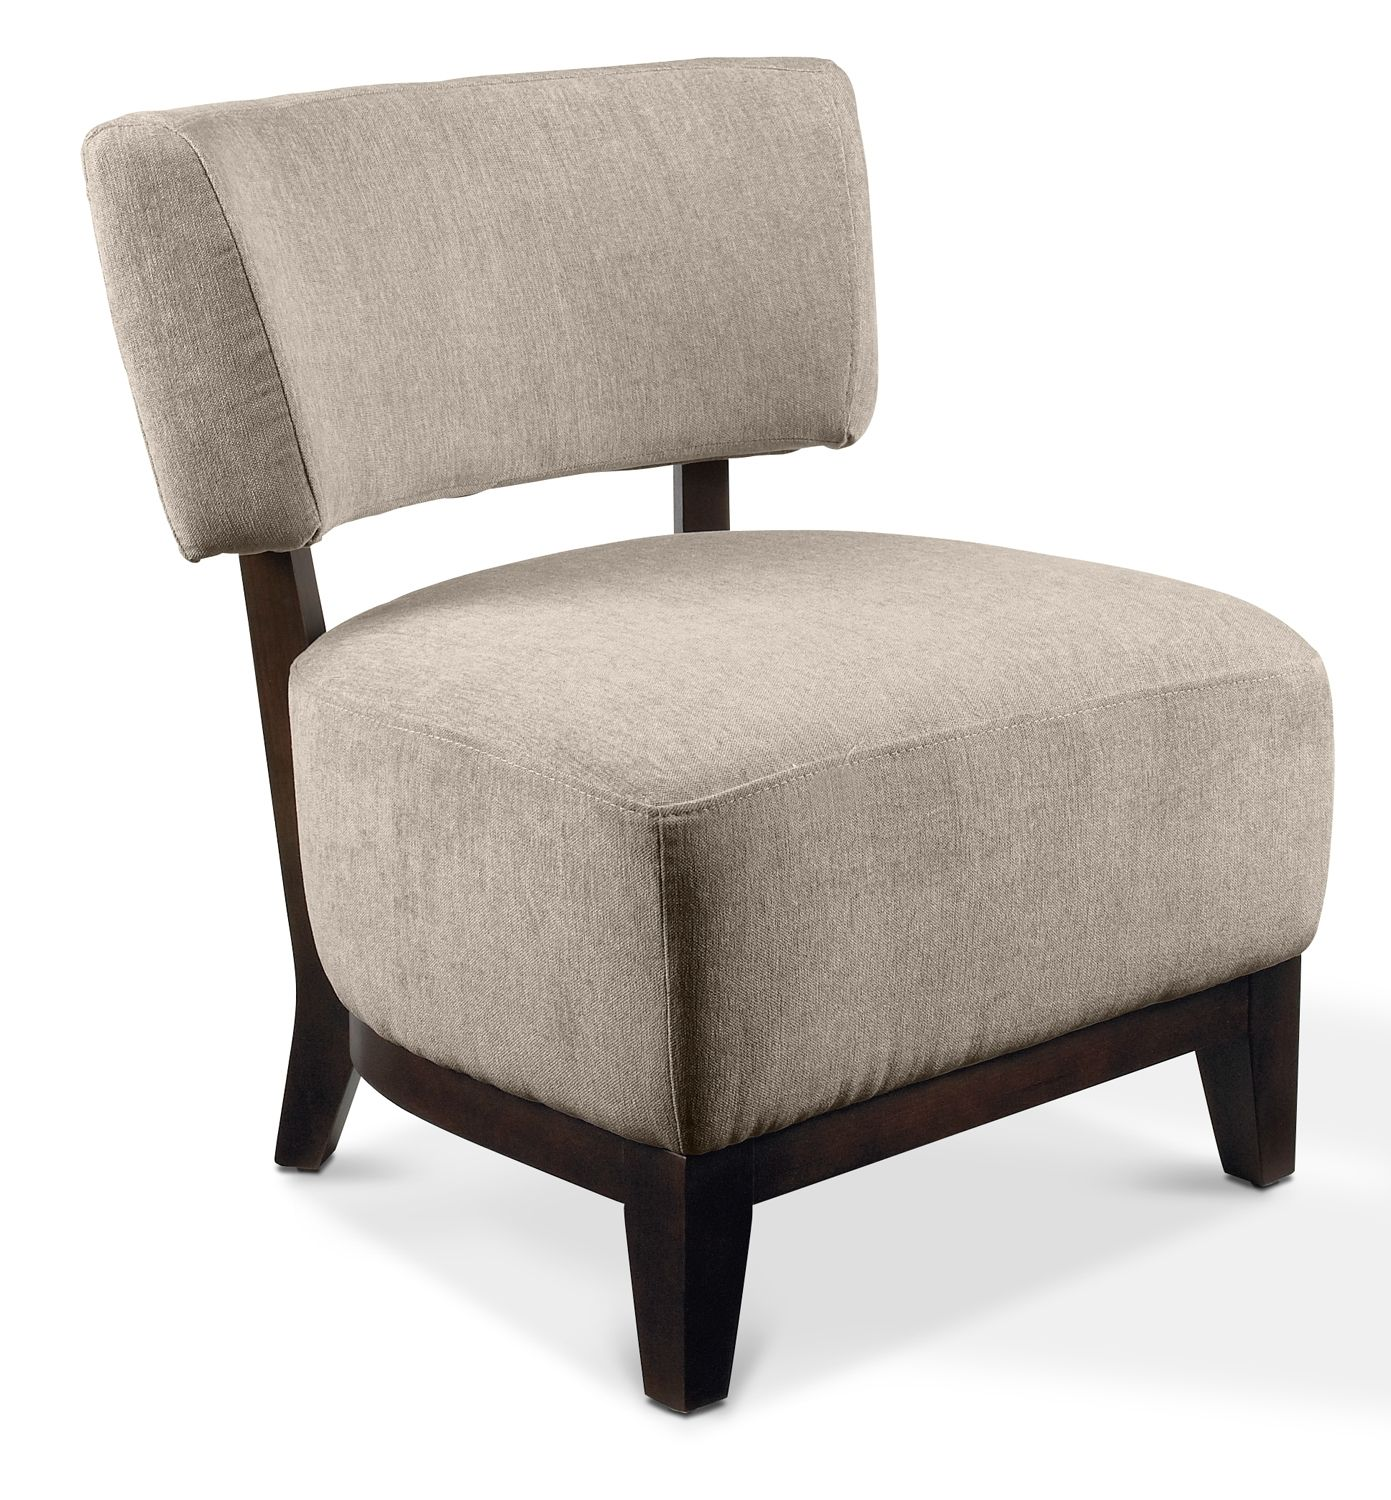 Alfie Accent Chair Beige Accent Chairs Accent Chairs